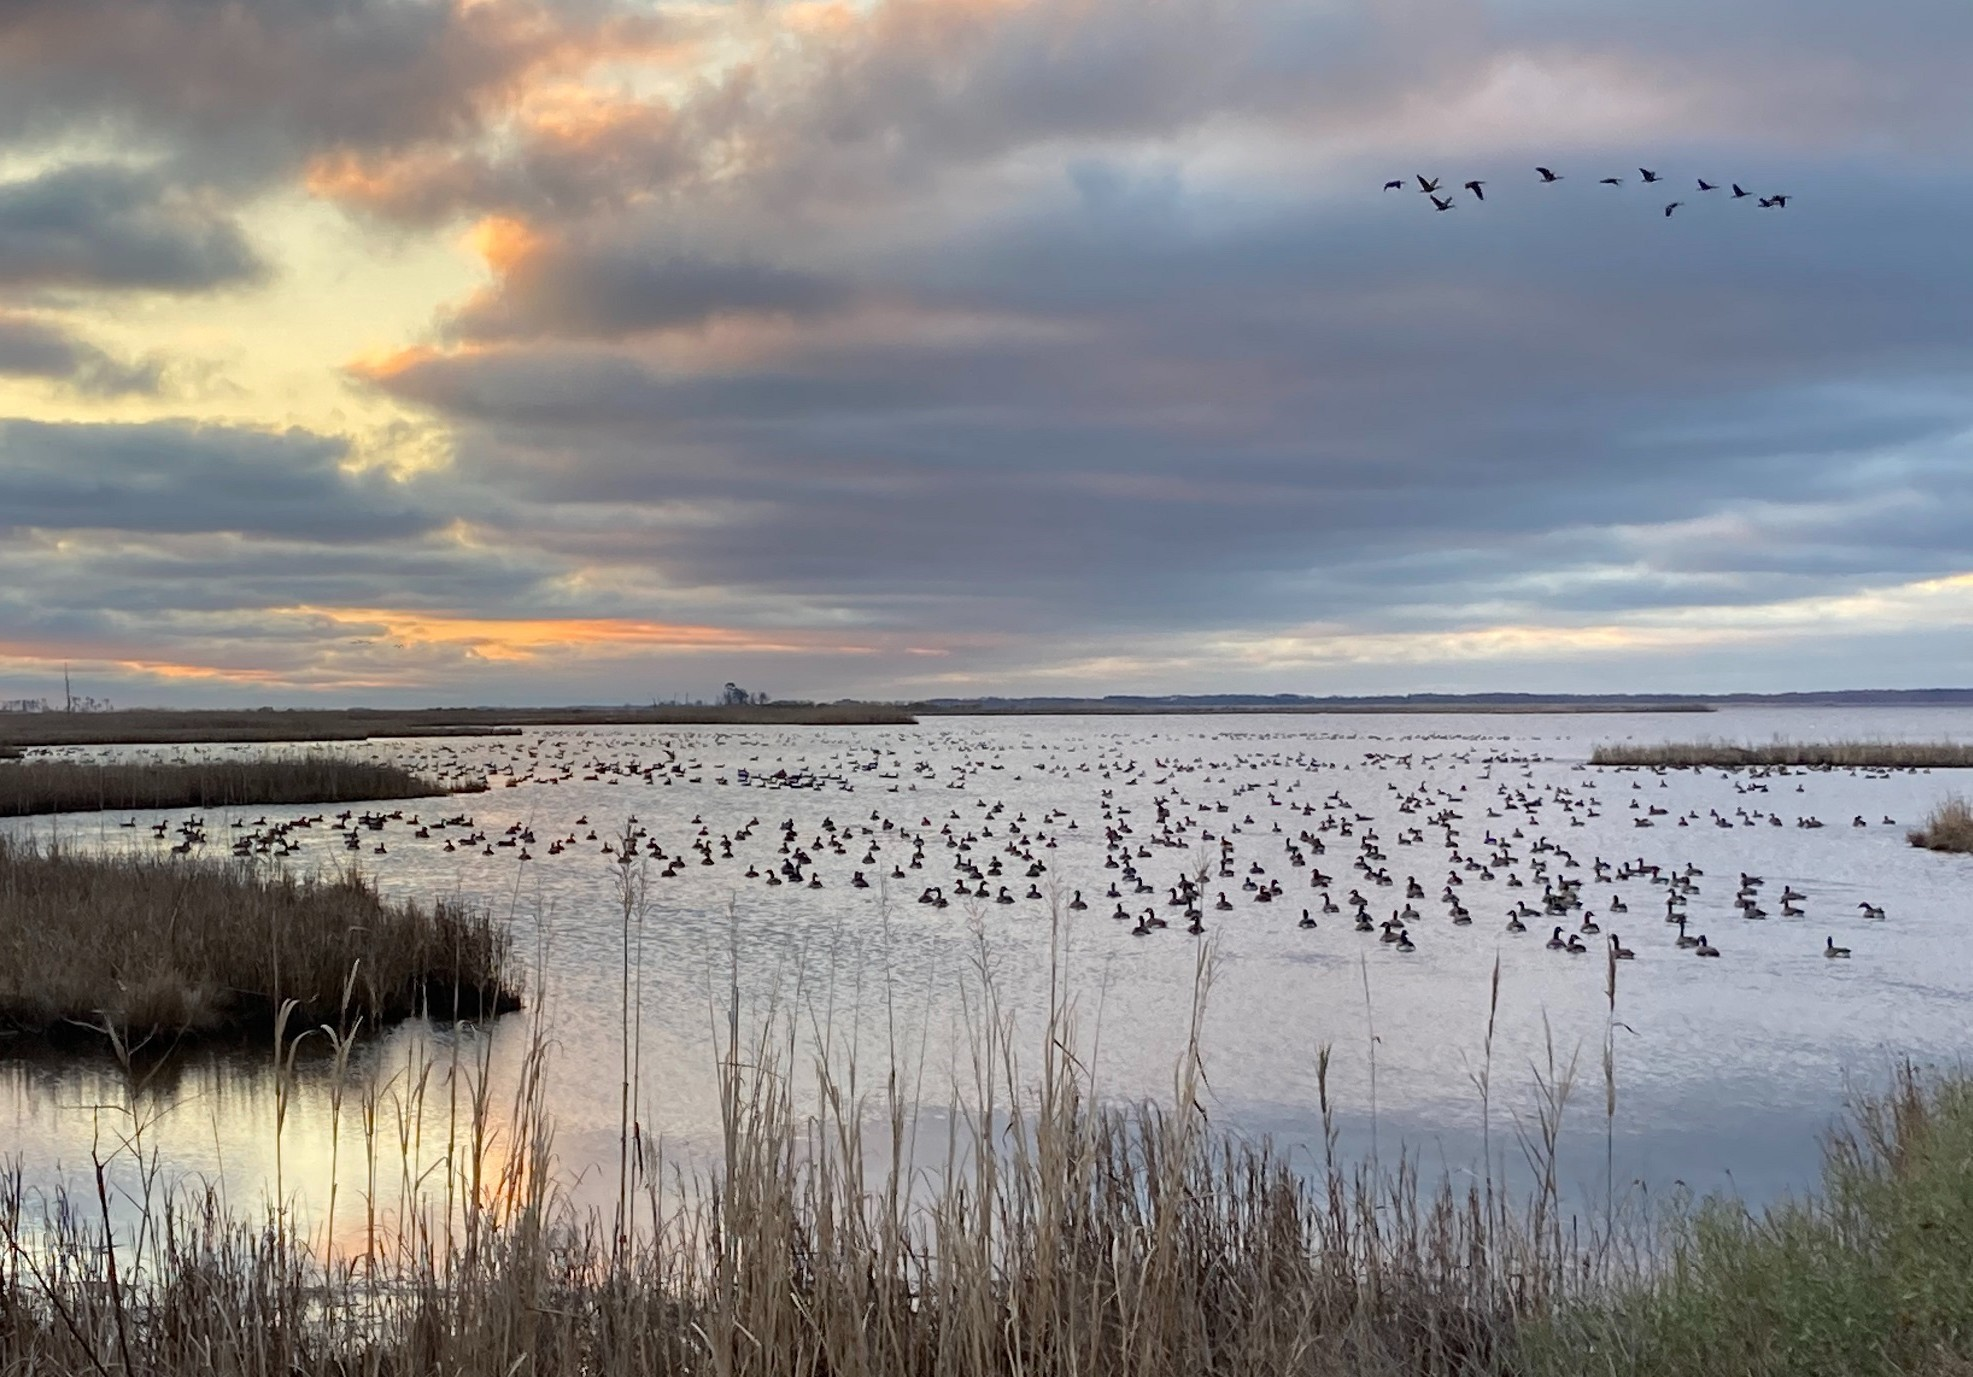 waterfowl in and over water with marshy shores